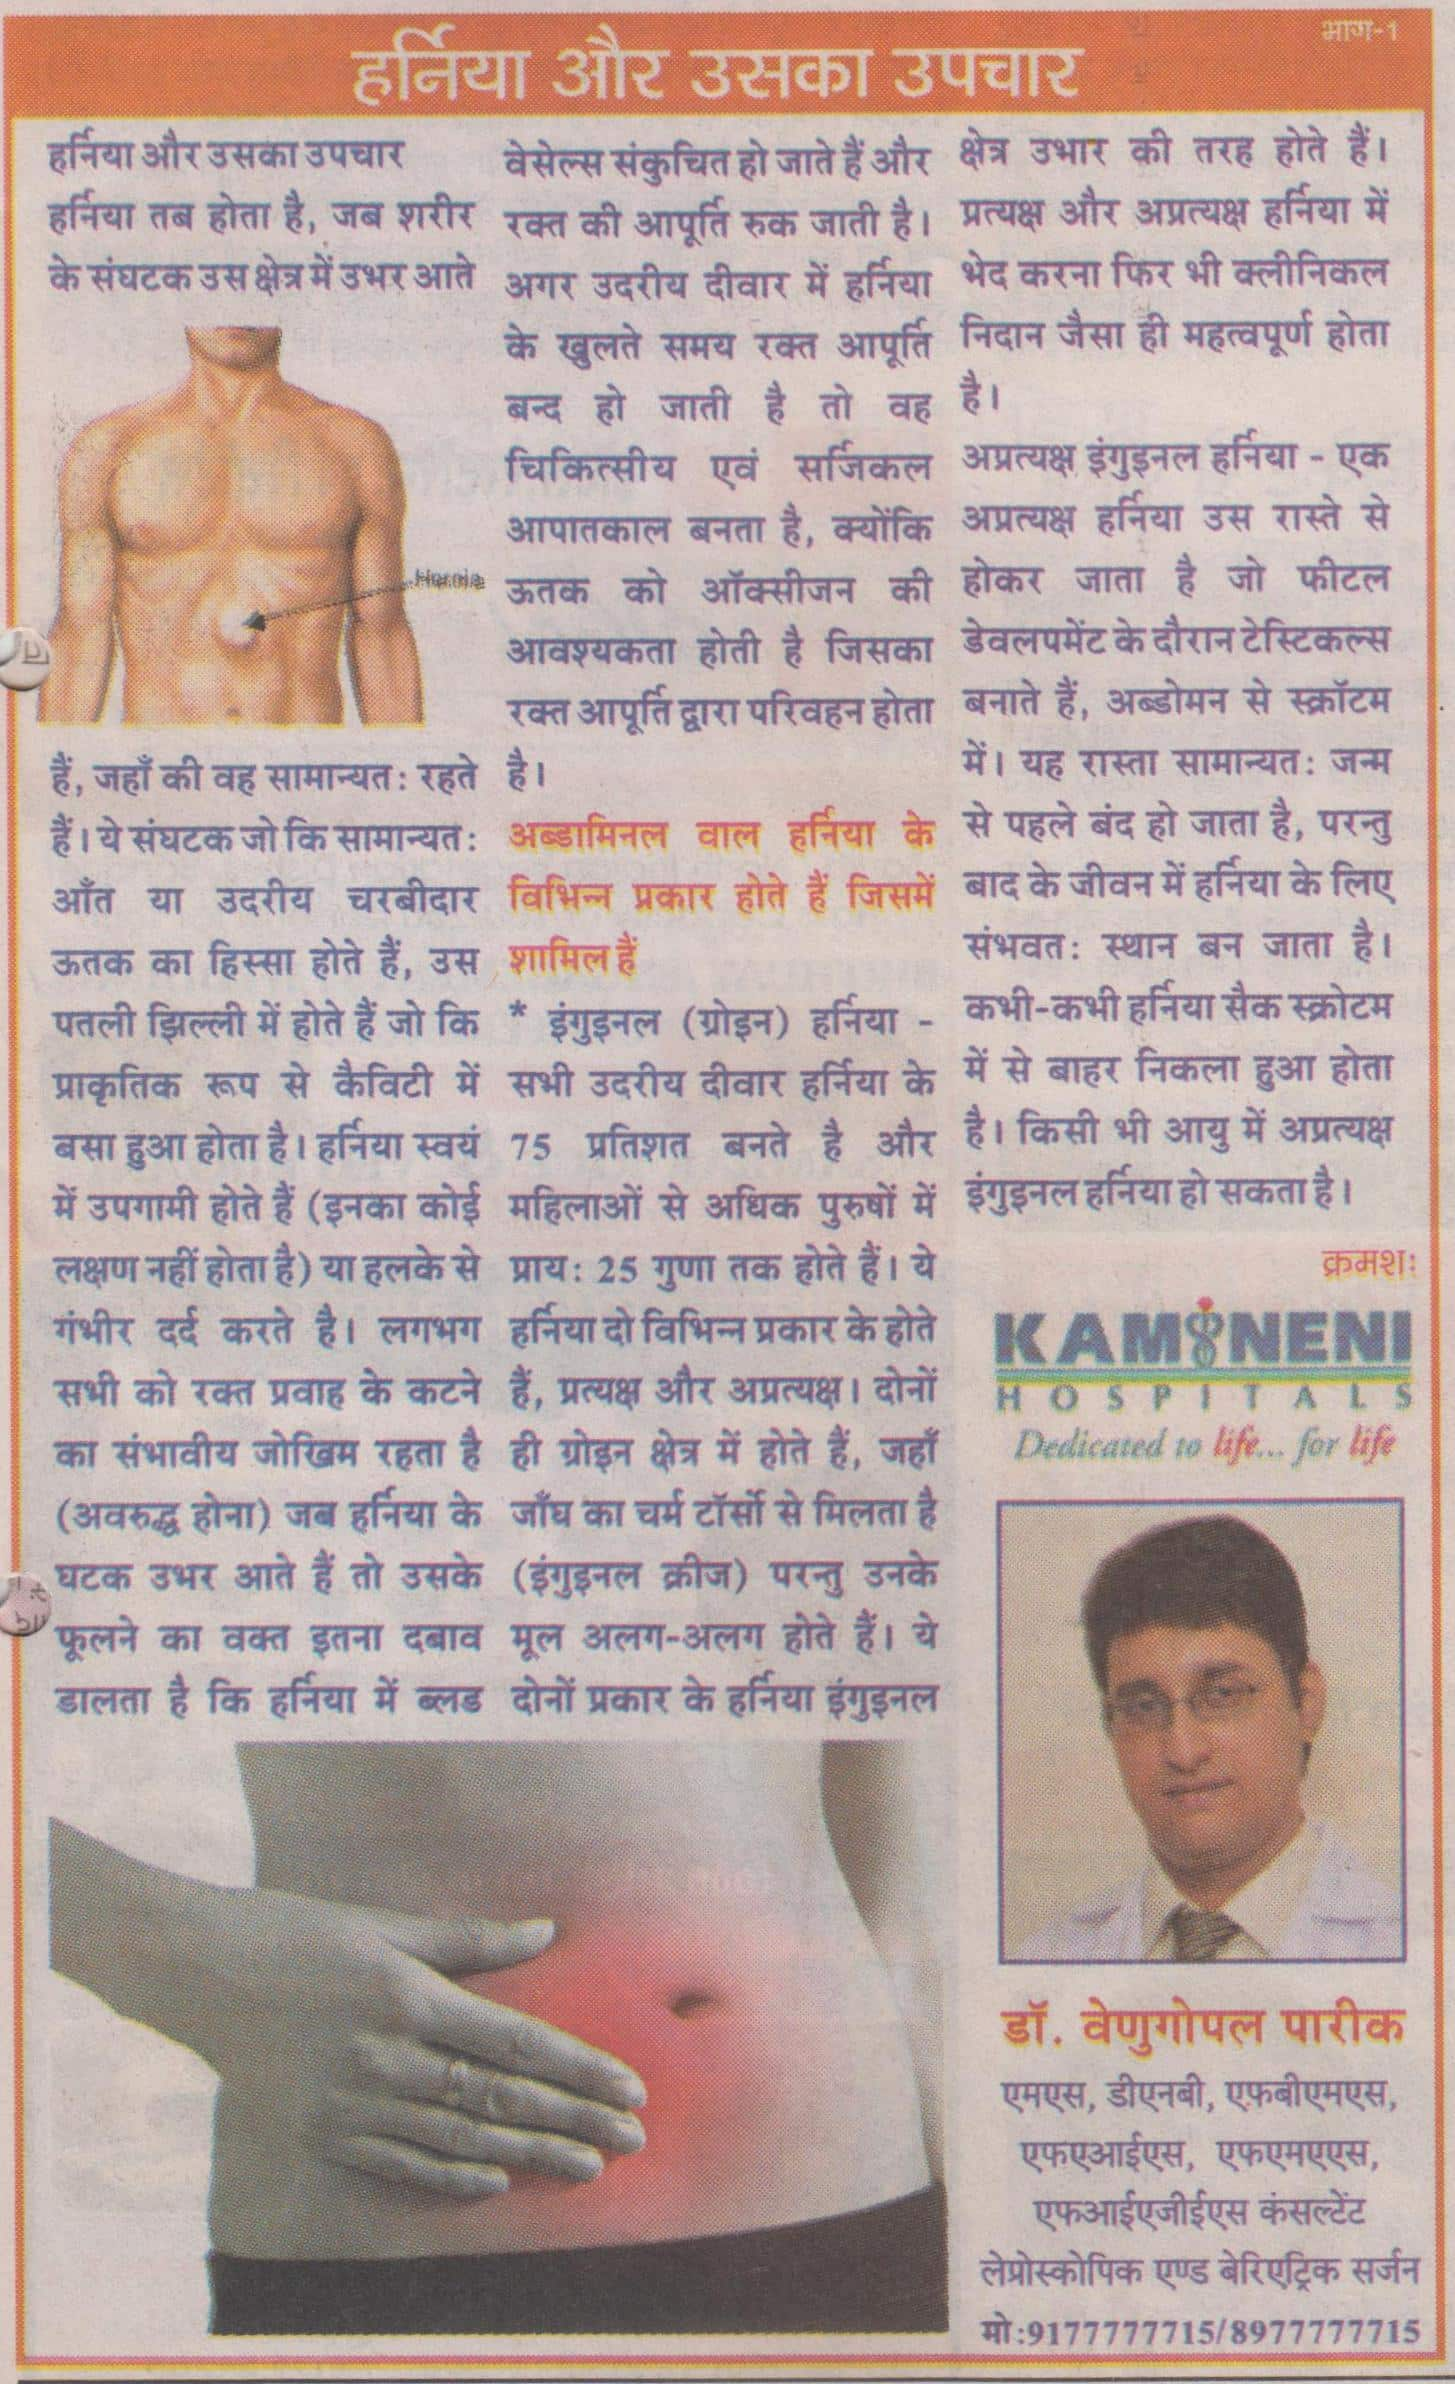 Hemorrhoid signs and symptoms and treatment - Explained by Dr V Pareek in Hindi Newspaper